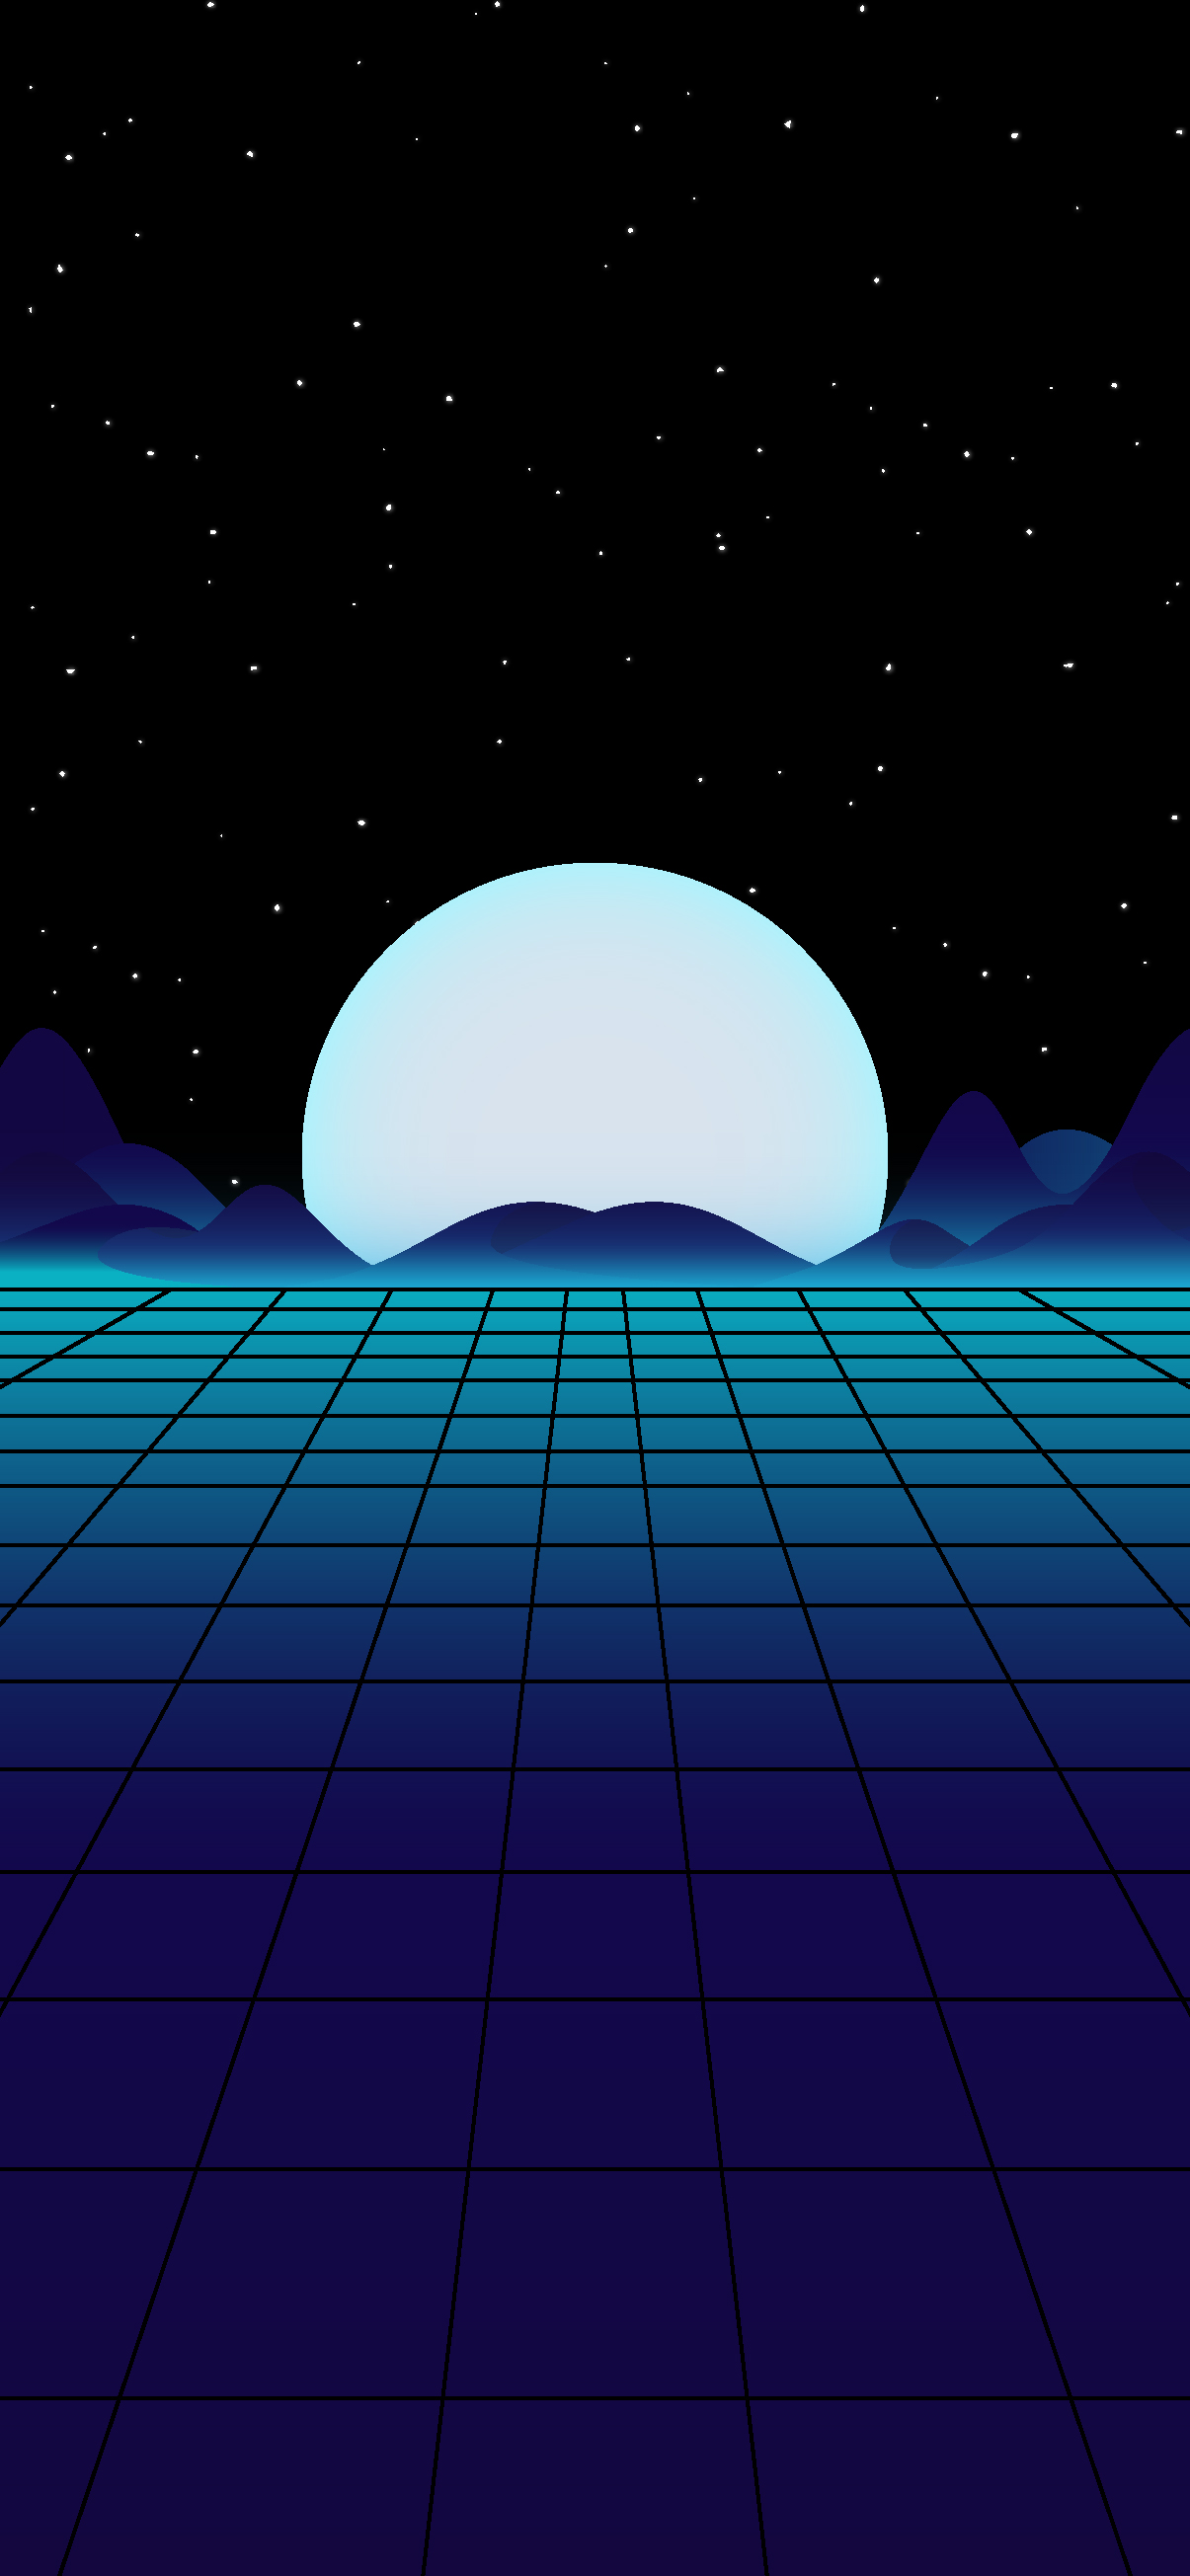 Beautiful and cool synthwave wallpaper night